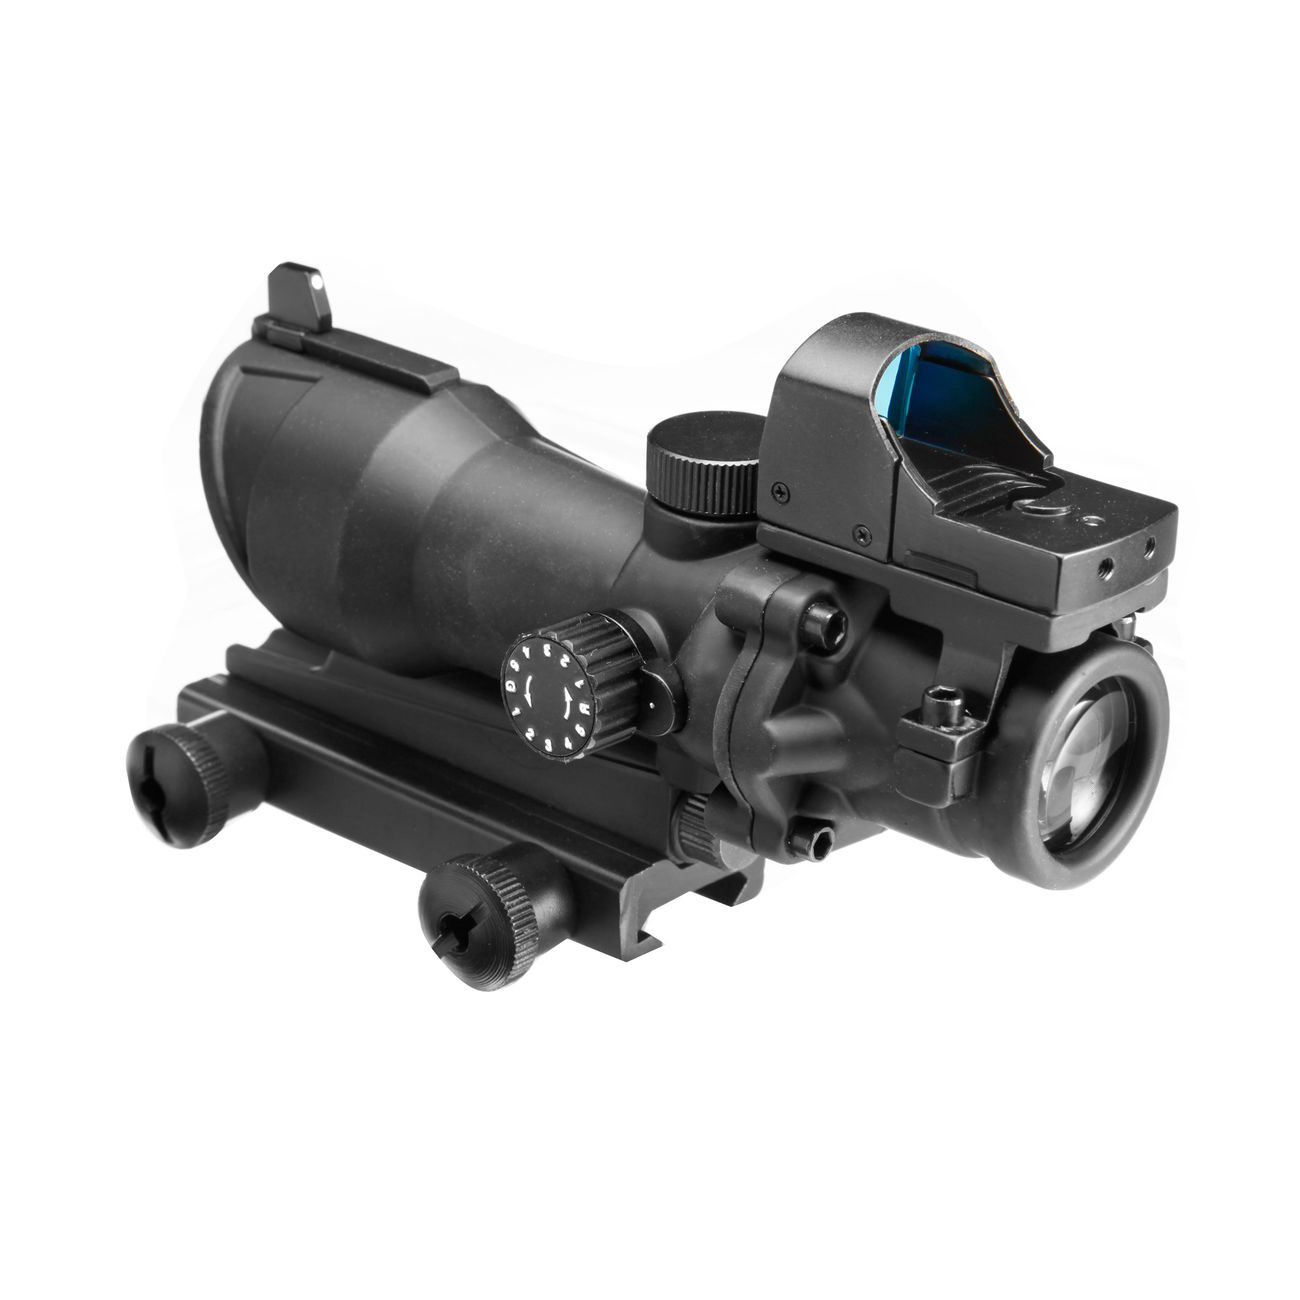 Aim-O TA01 Style Scope 4x32 beleuchtet mit Mini Red Dot schwarz AO 5320-BK 2